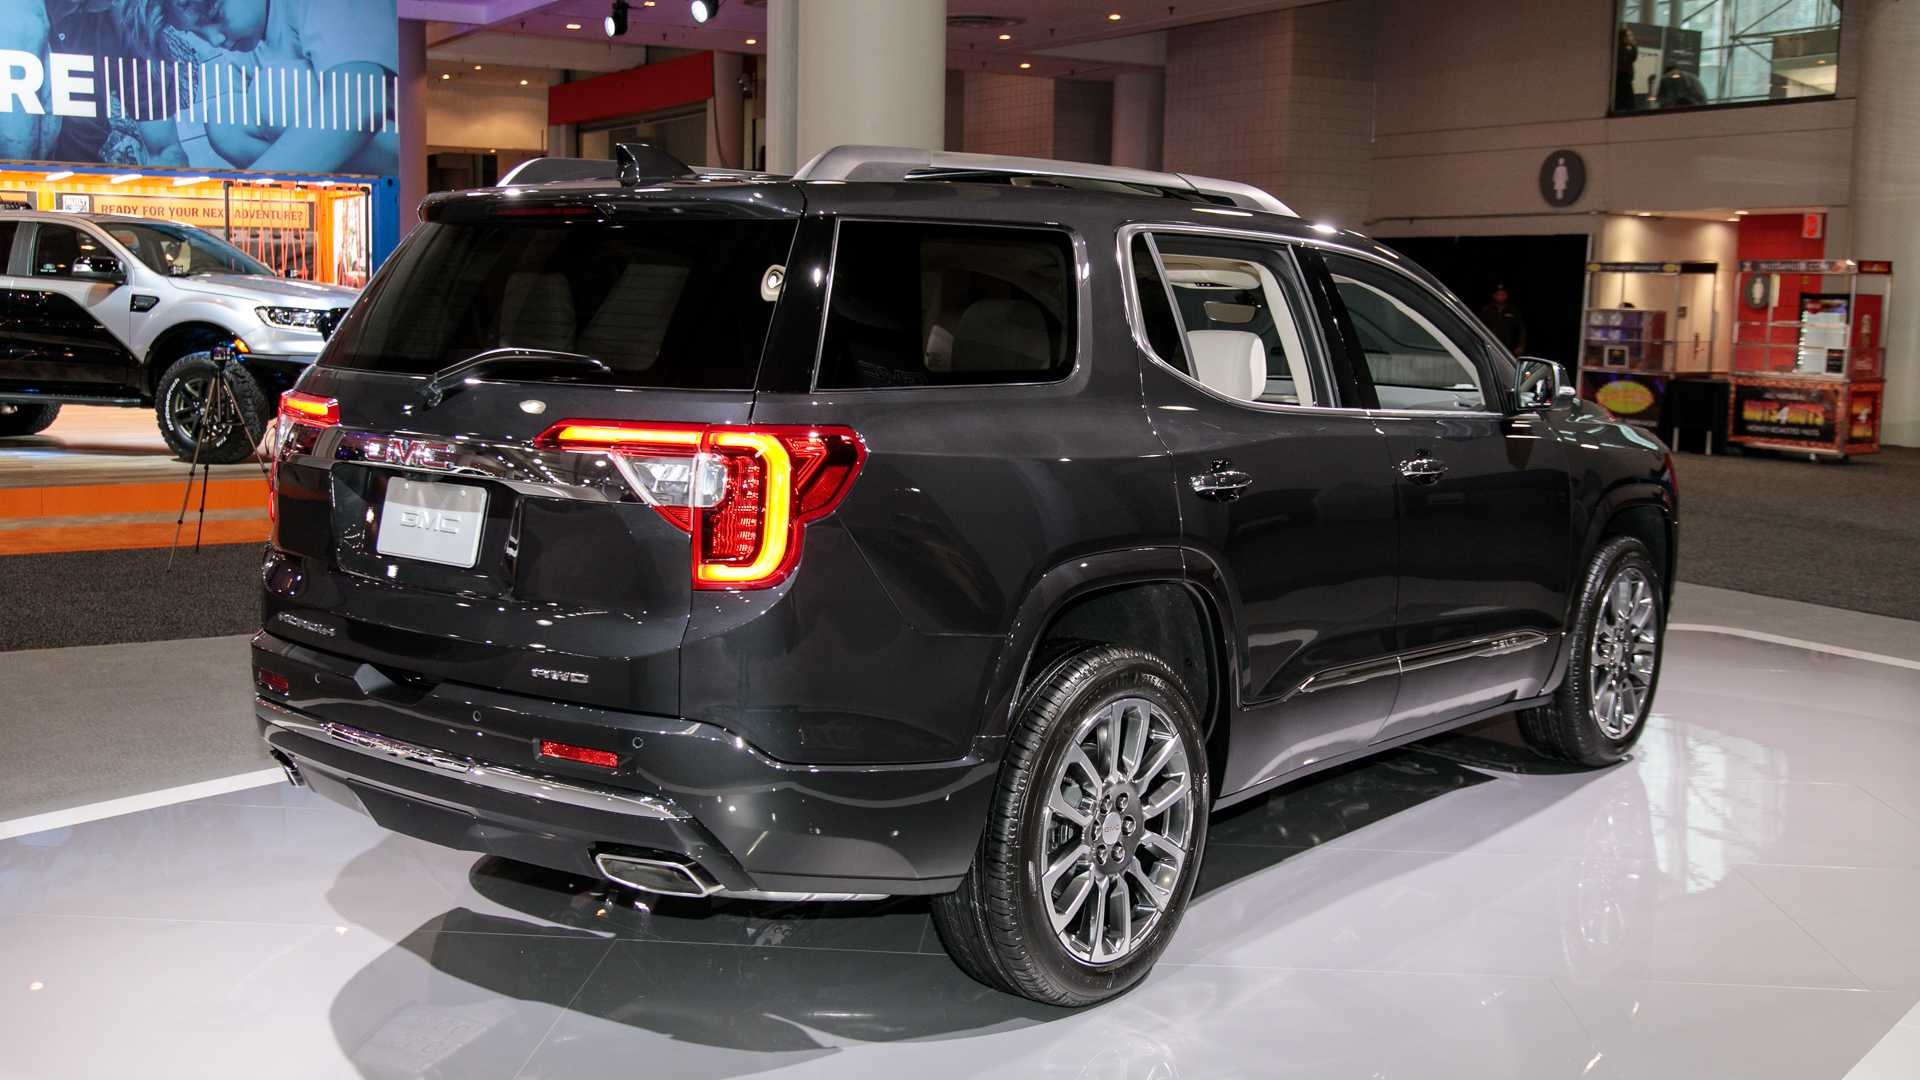 2020 GMC Acadia SUV Rear View